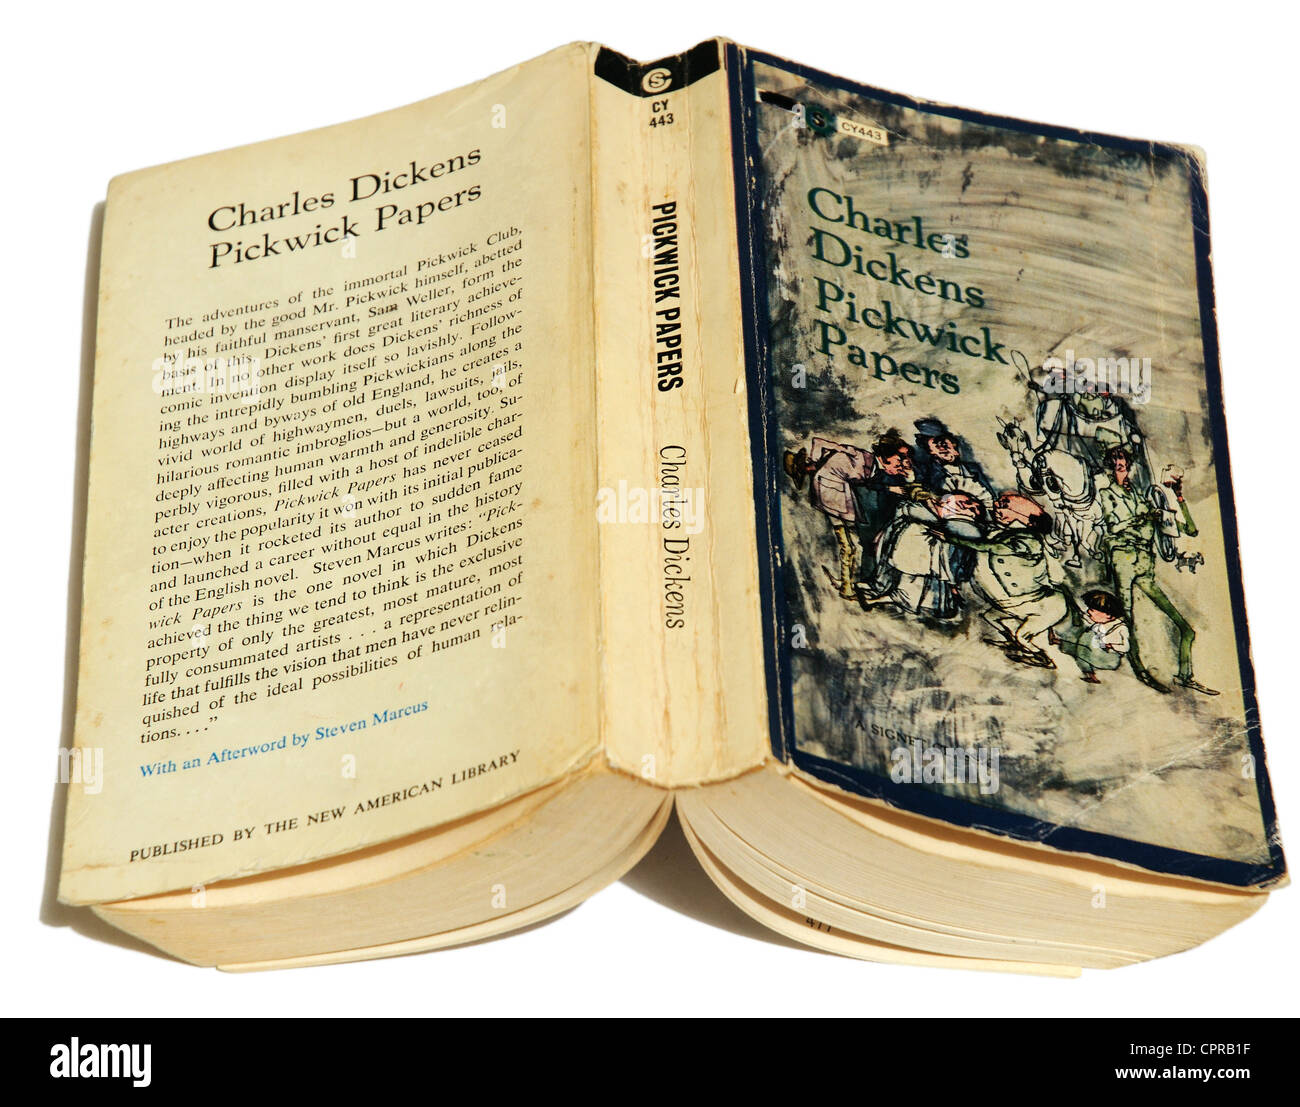 charles dickens 11 essay Charles dickens: a christmas carol essay charles dickens: a christmas carol has been deemed a biting piece of social commentary by some.